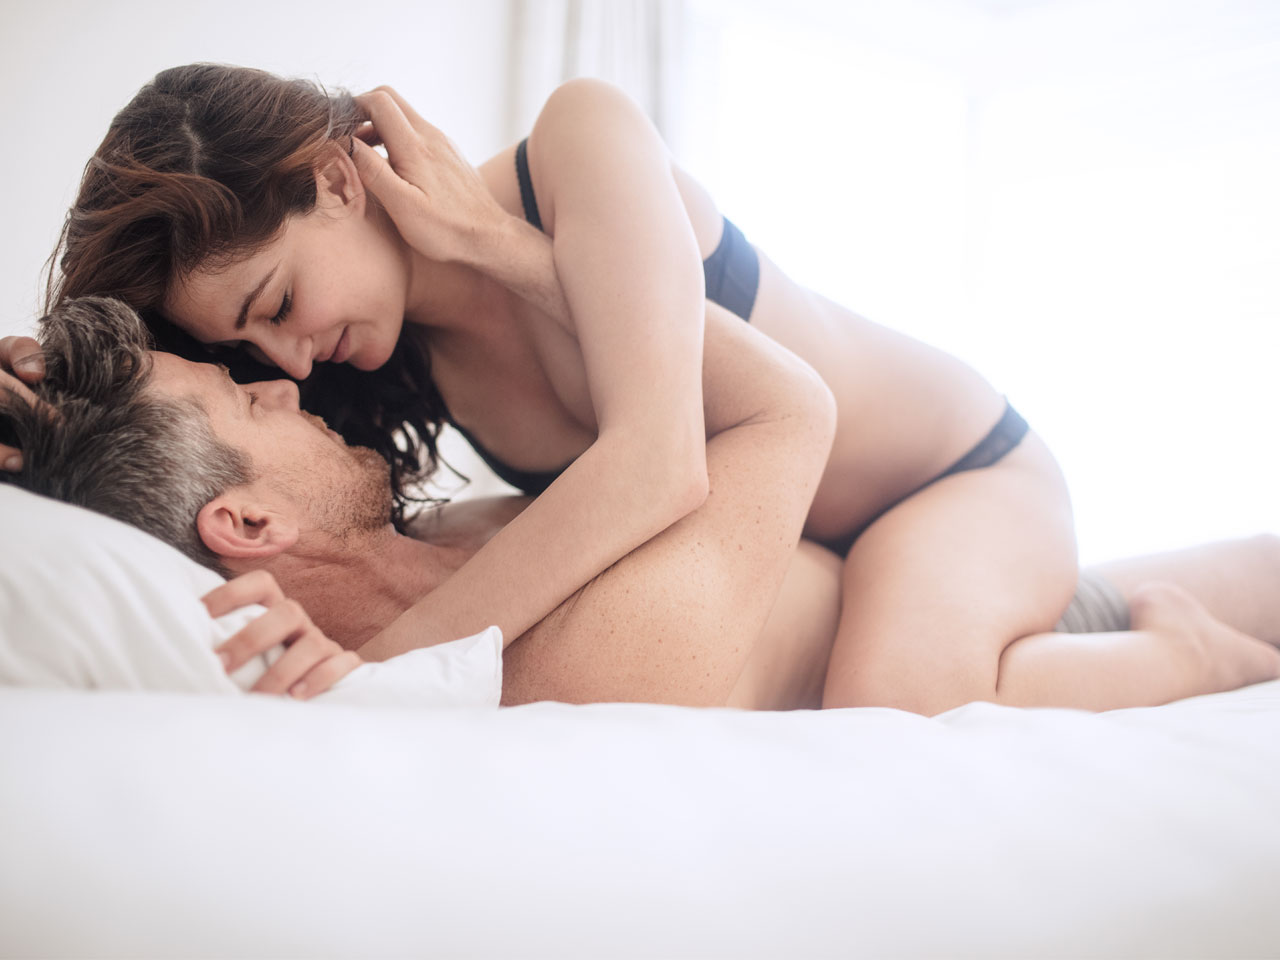 couples having hard sex